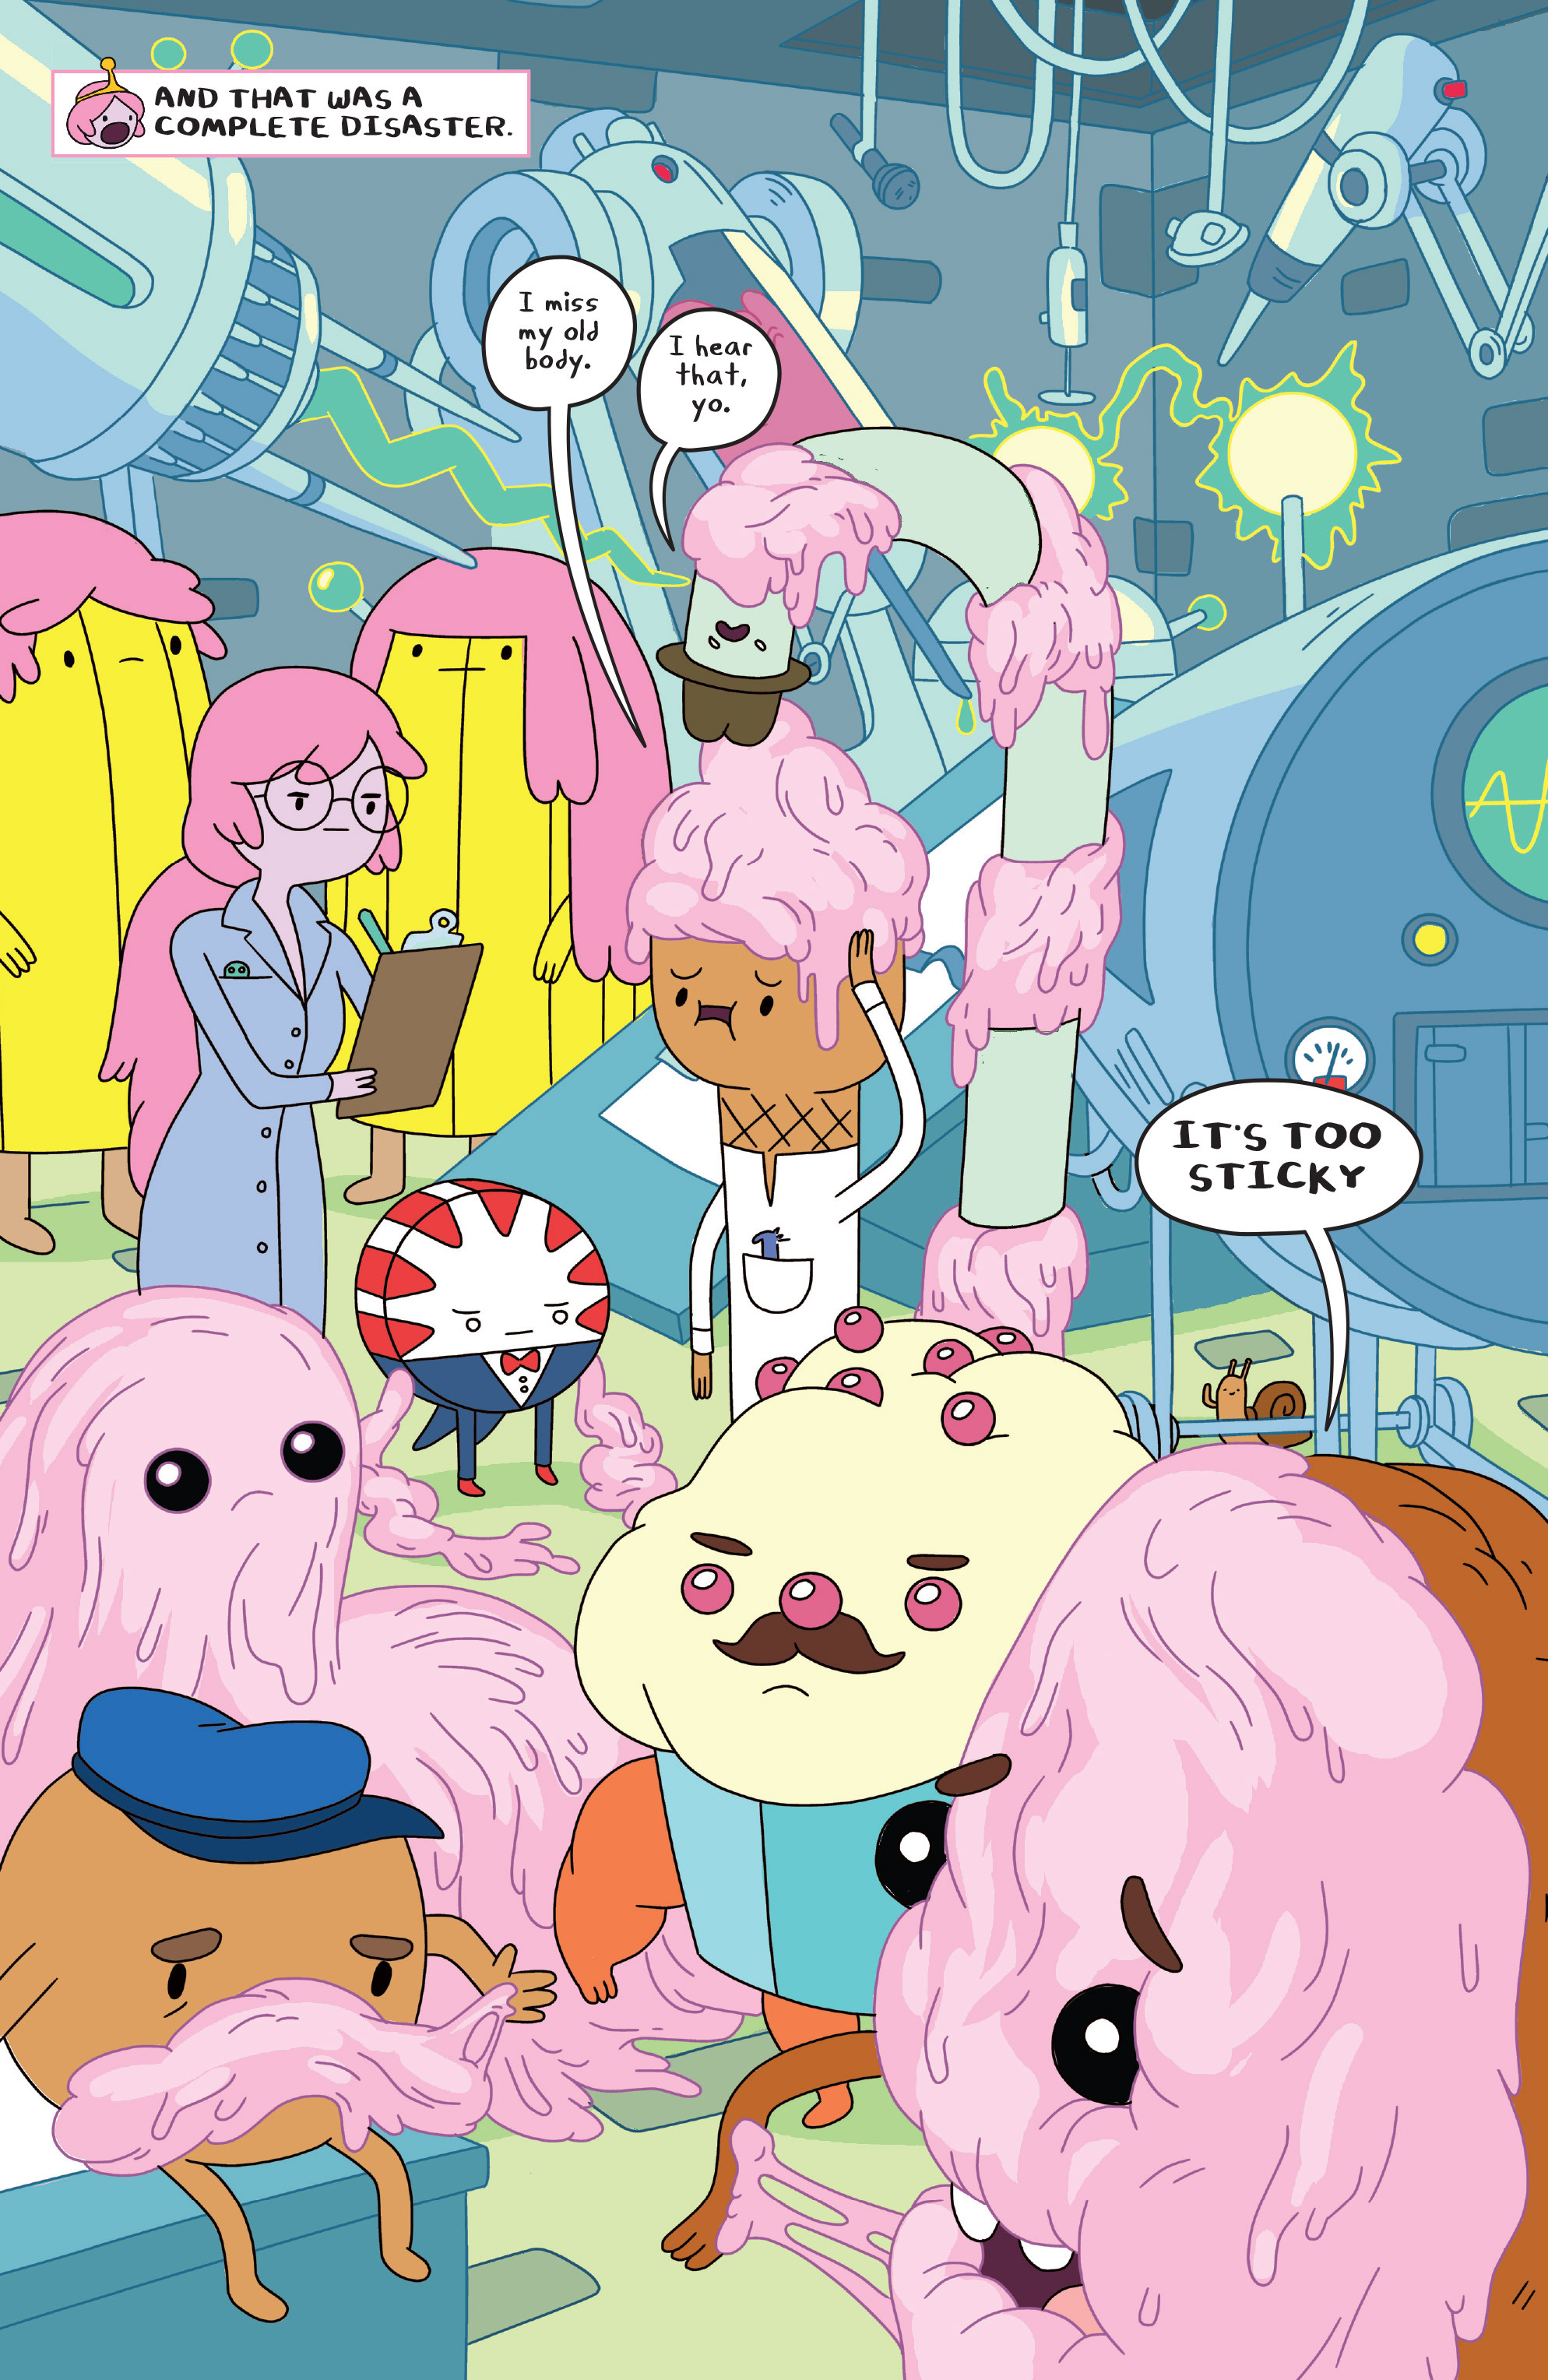 Read online Adventure Time comic -  Issue #23 - 11